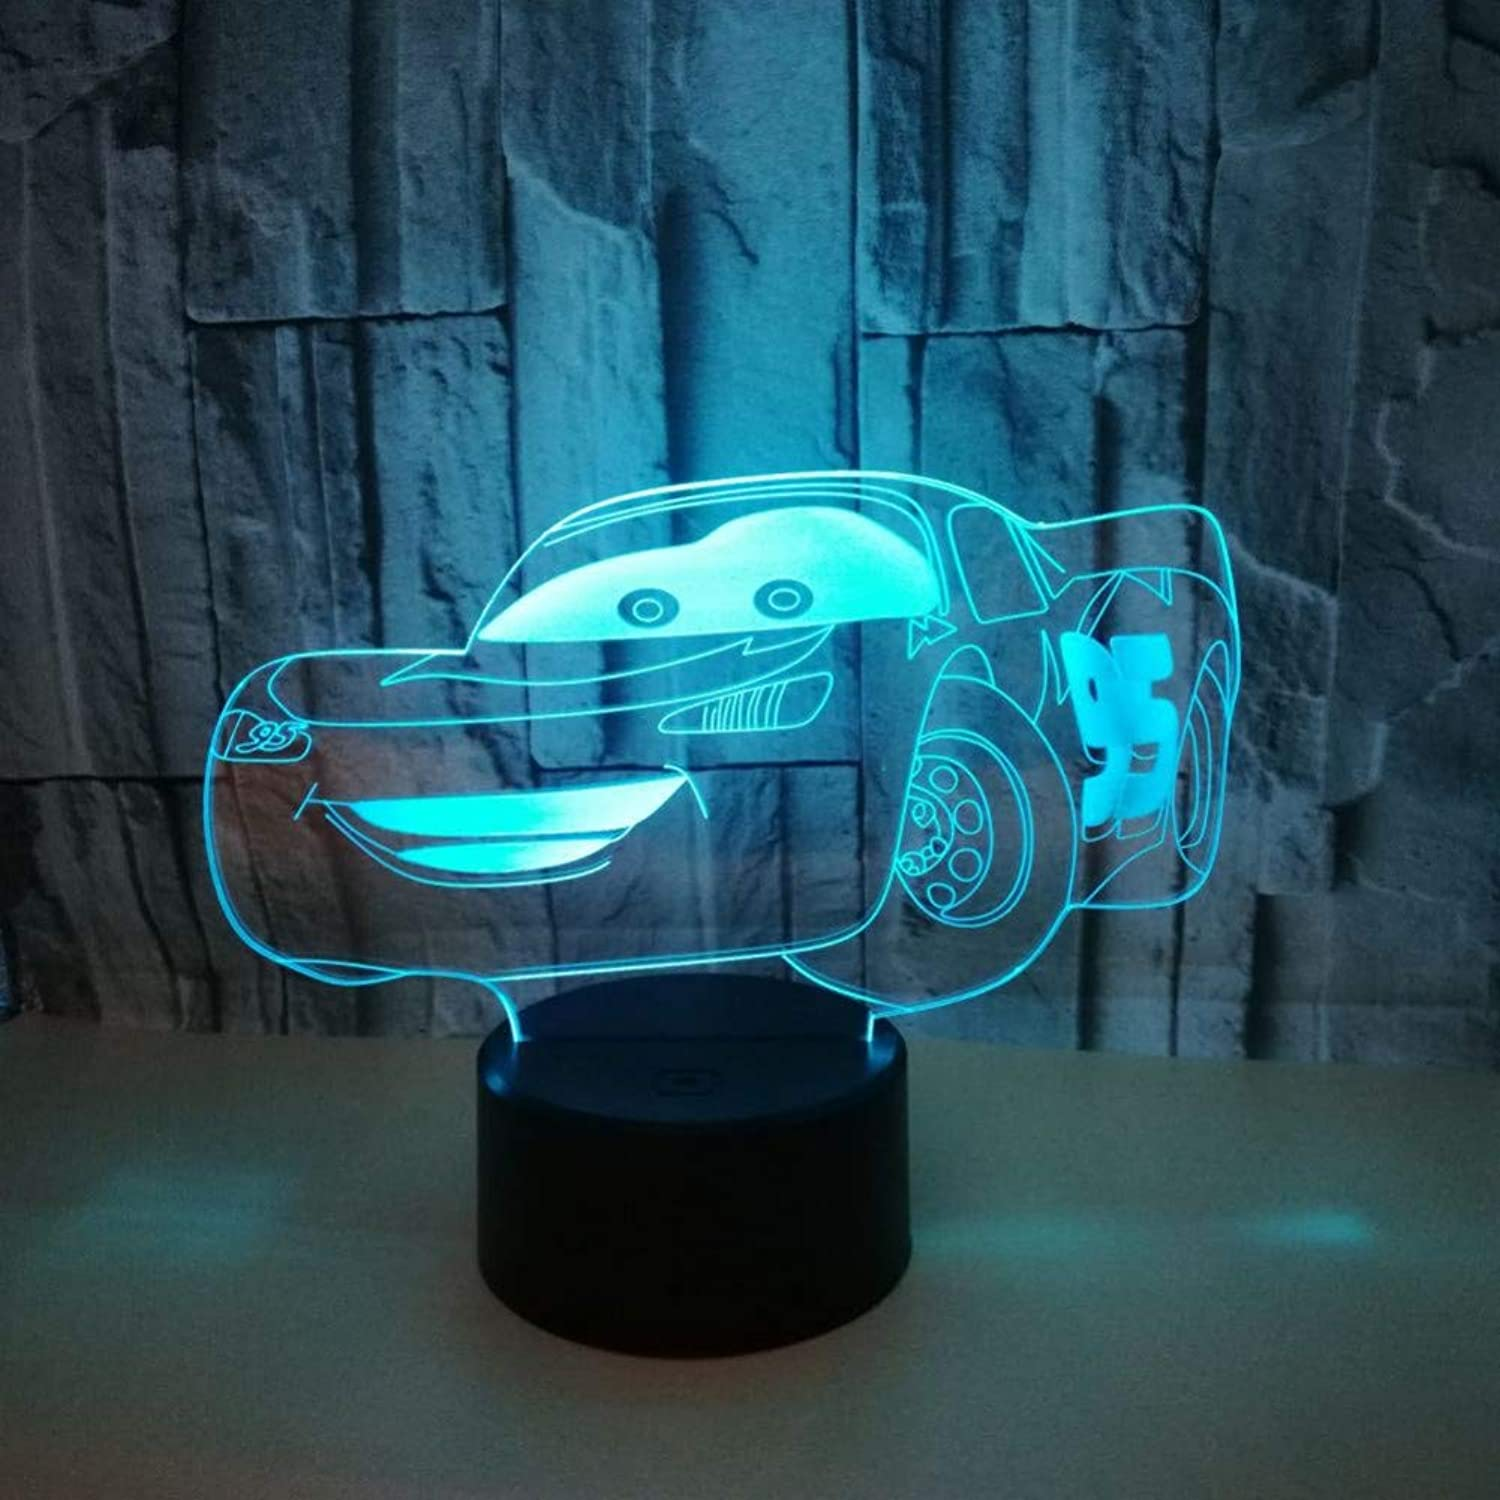 KAIYED 3D Night Light Sports Car 3D Lights, colorful 3D Led Gradual Change Illusion Lamp Touch Remote Control 3D Led Small Night Light